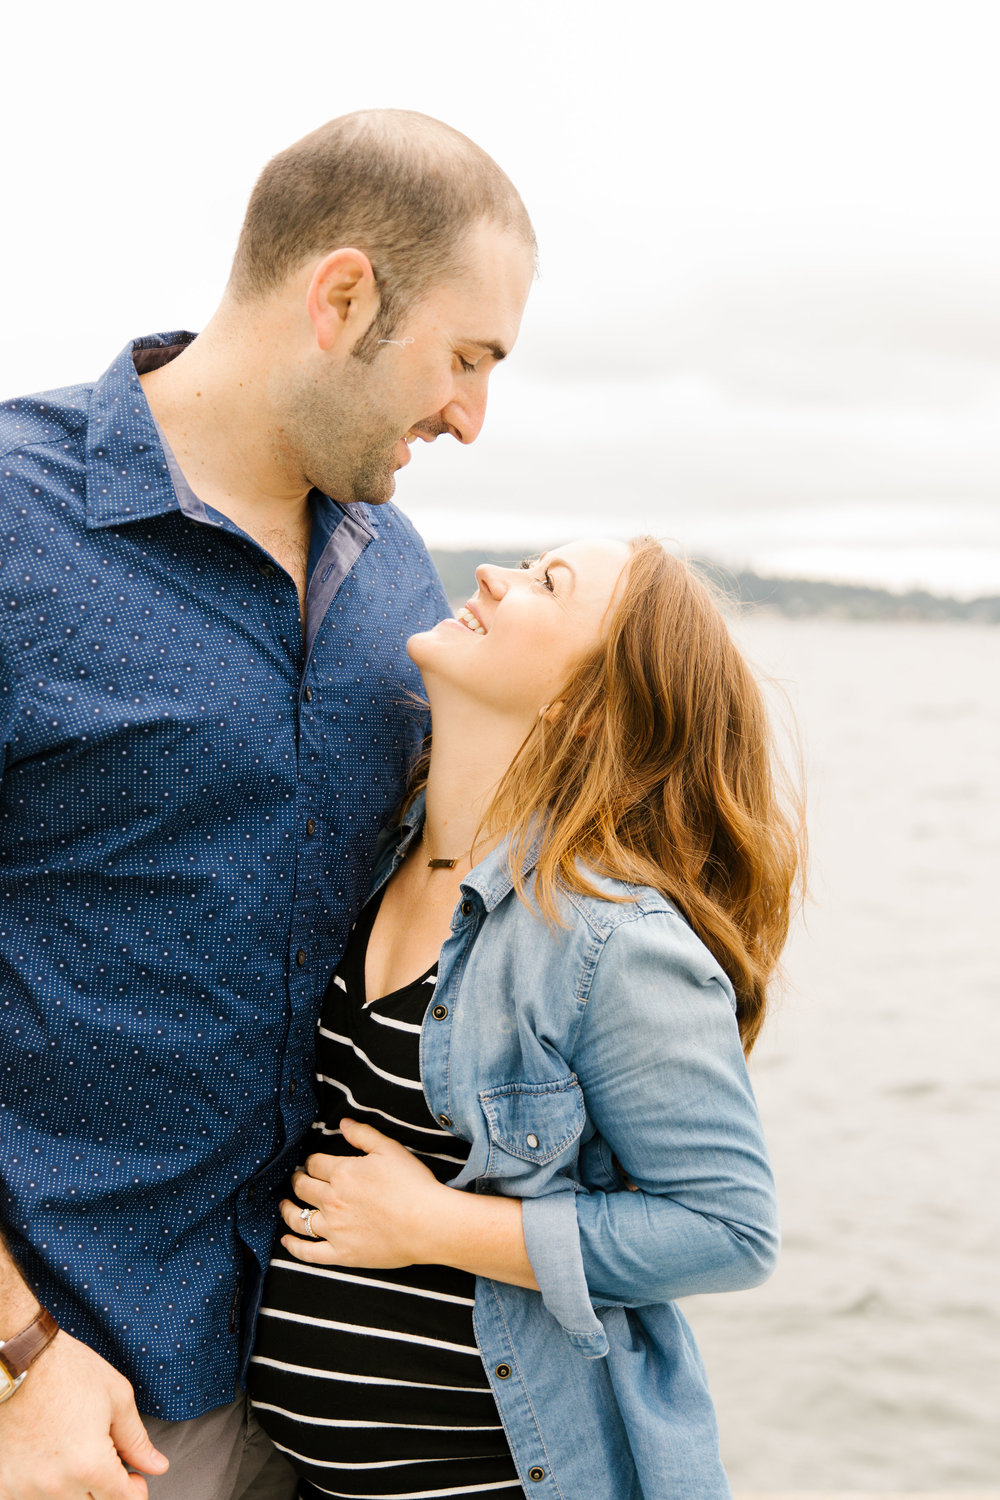 Family Photography Session on the Beach in Seattle Bellevue WA Natural Light Chelsea Macor Photography-22.jpg